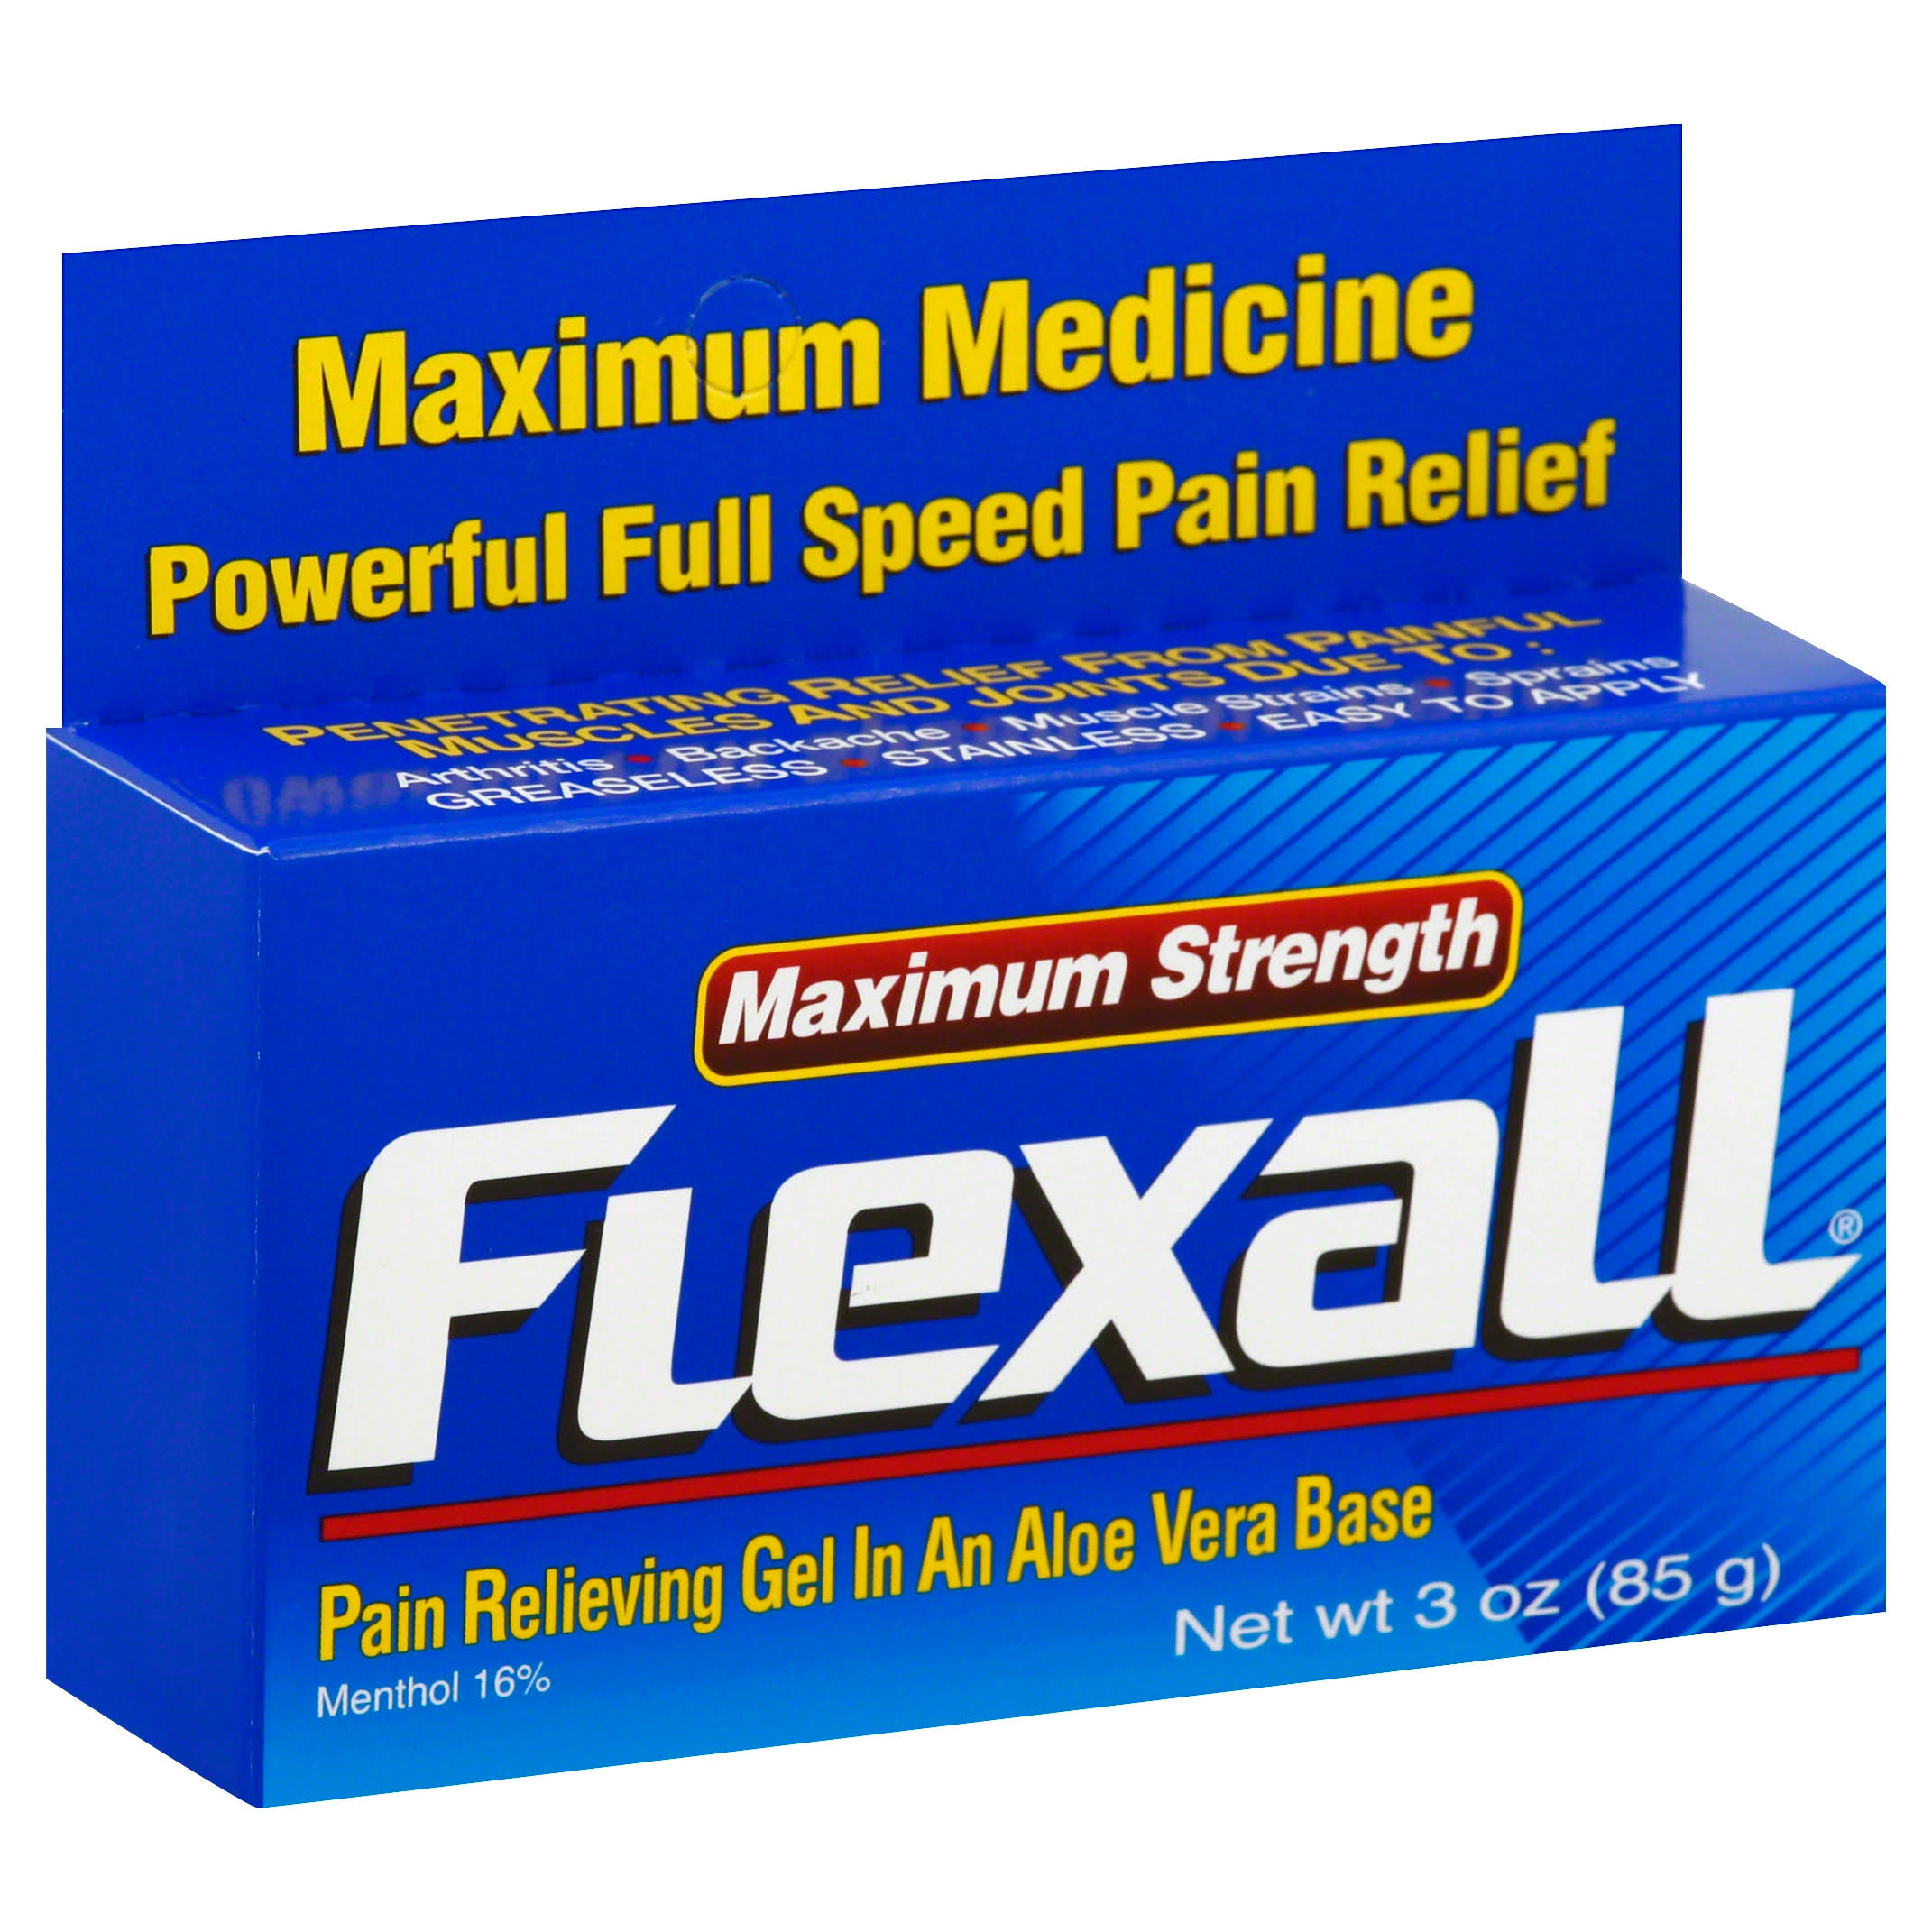 Flexall Gel Maximum Strength Pain Relieving Gel - 85g